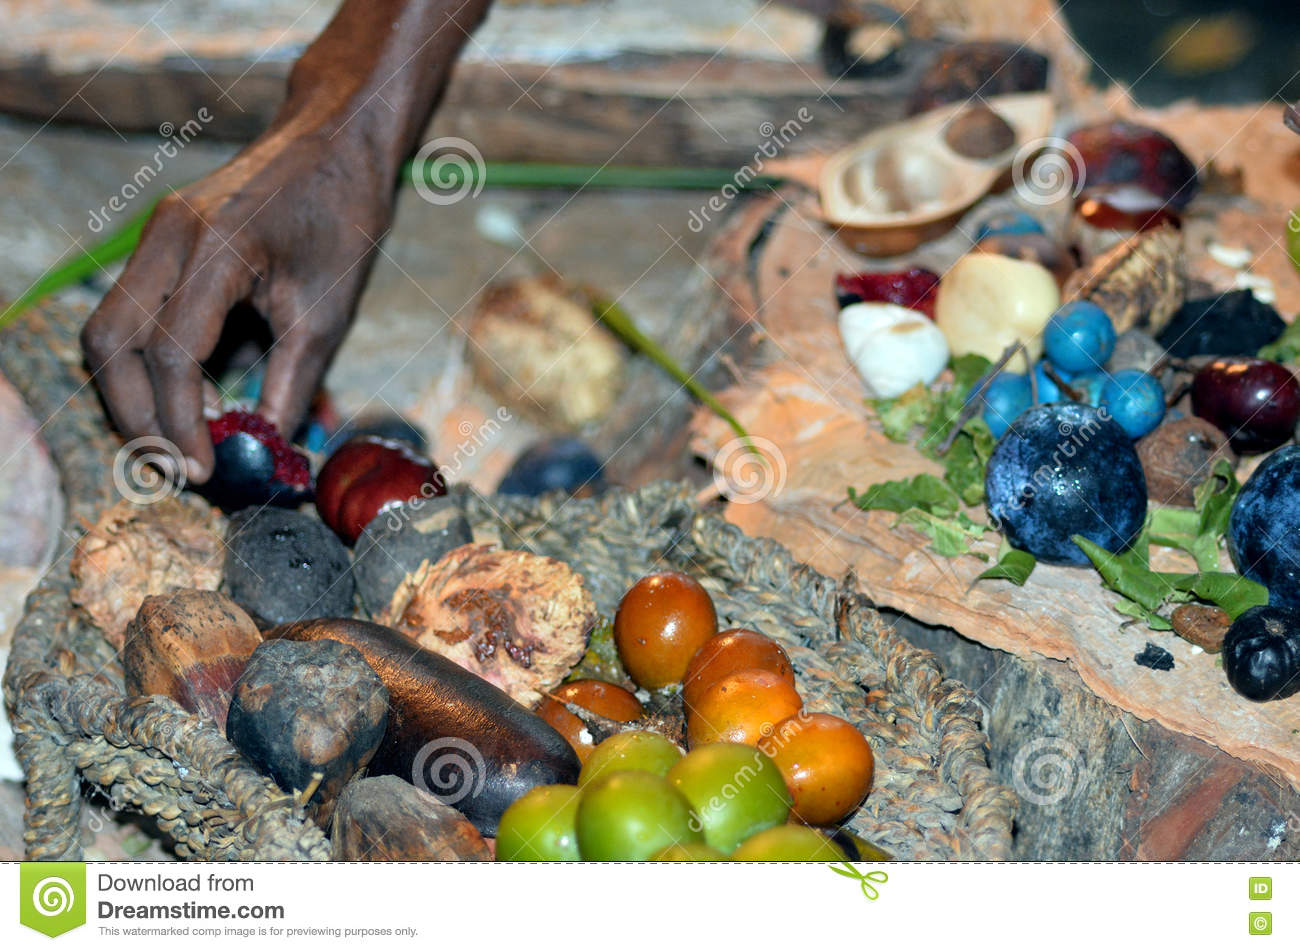 Yirrganydji aboriginal woman hand assorting fruit and for Aboriginal cuisine